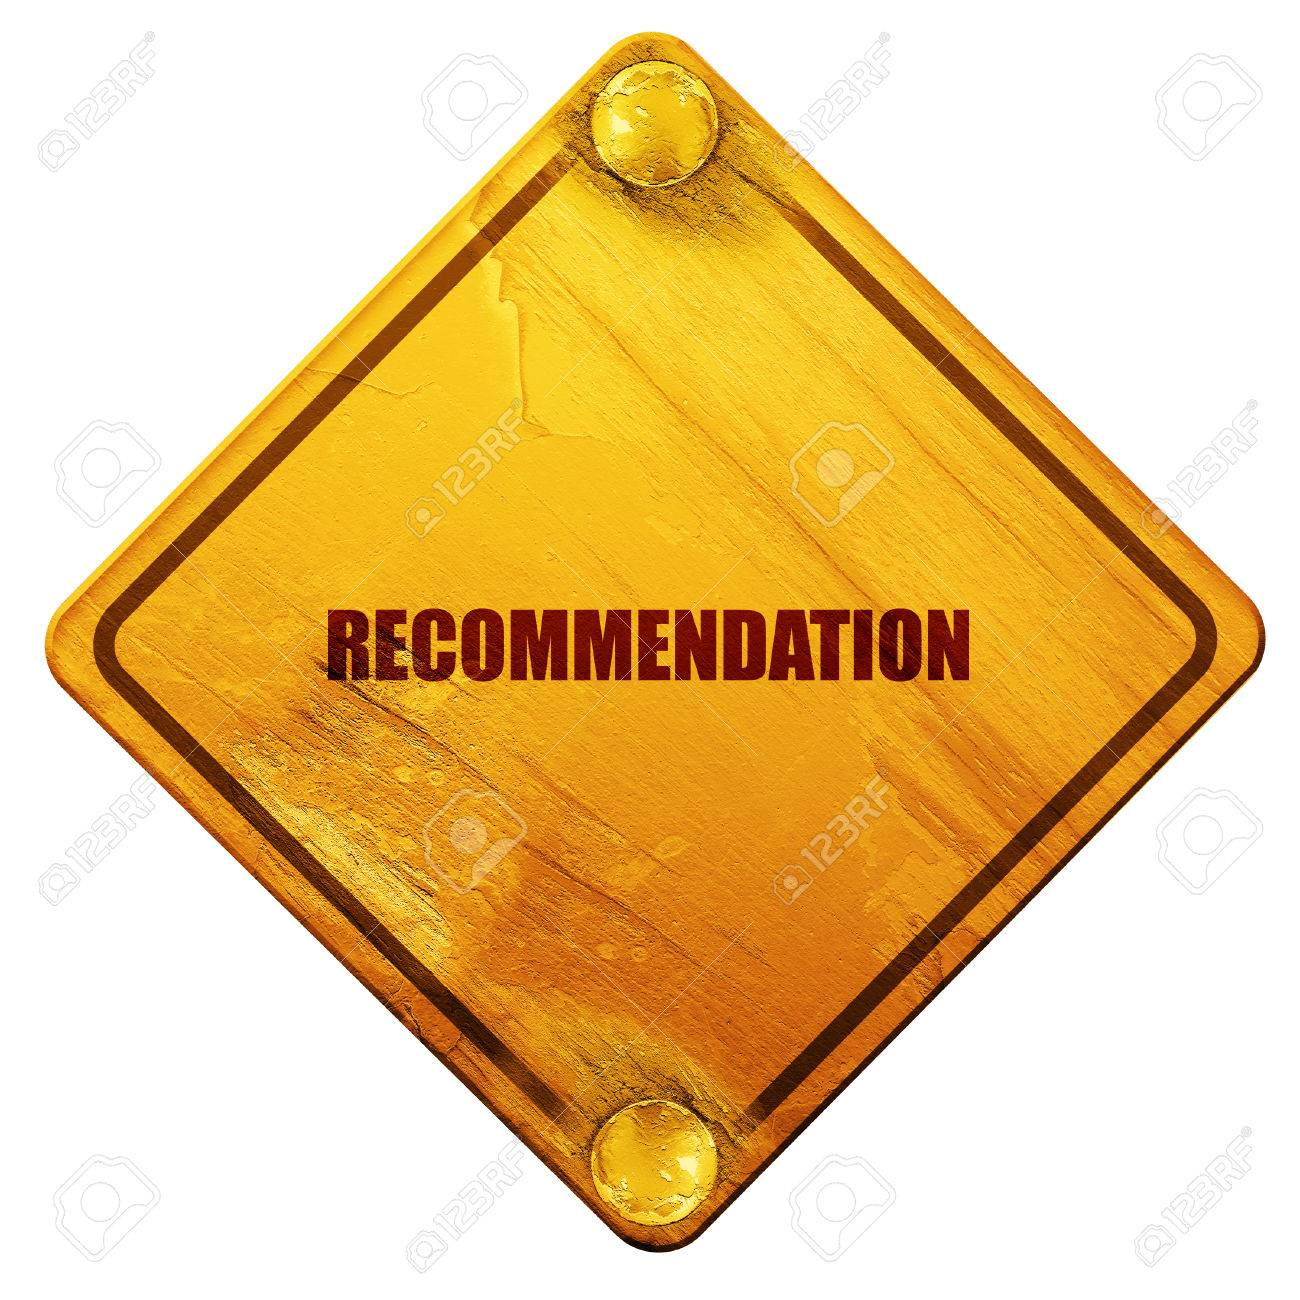 recommendation 3d rendering yellow road sign on a white stock photo recommendation 3d rendering yellow road sign on a white background